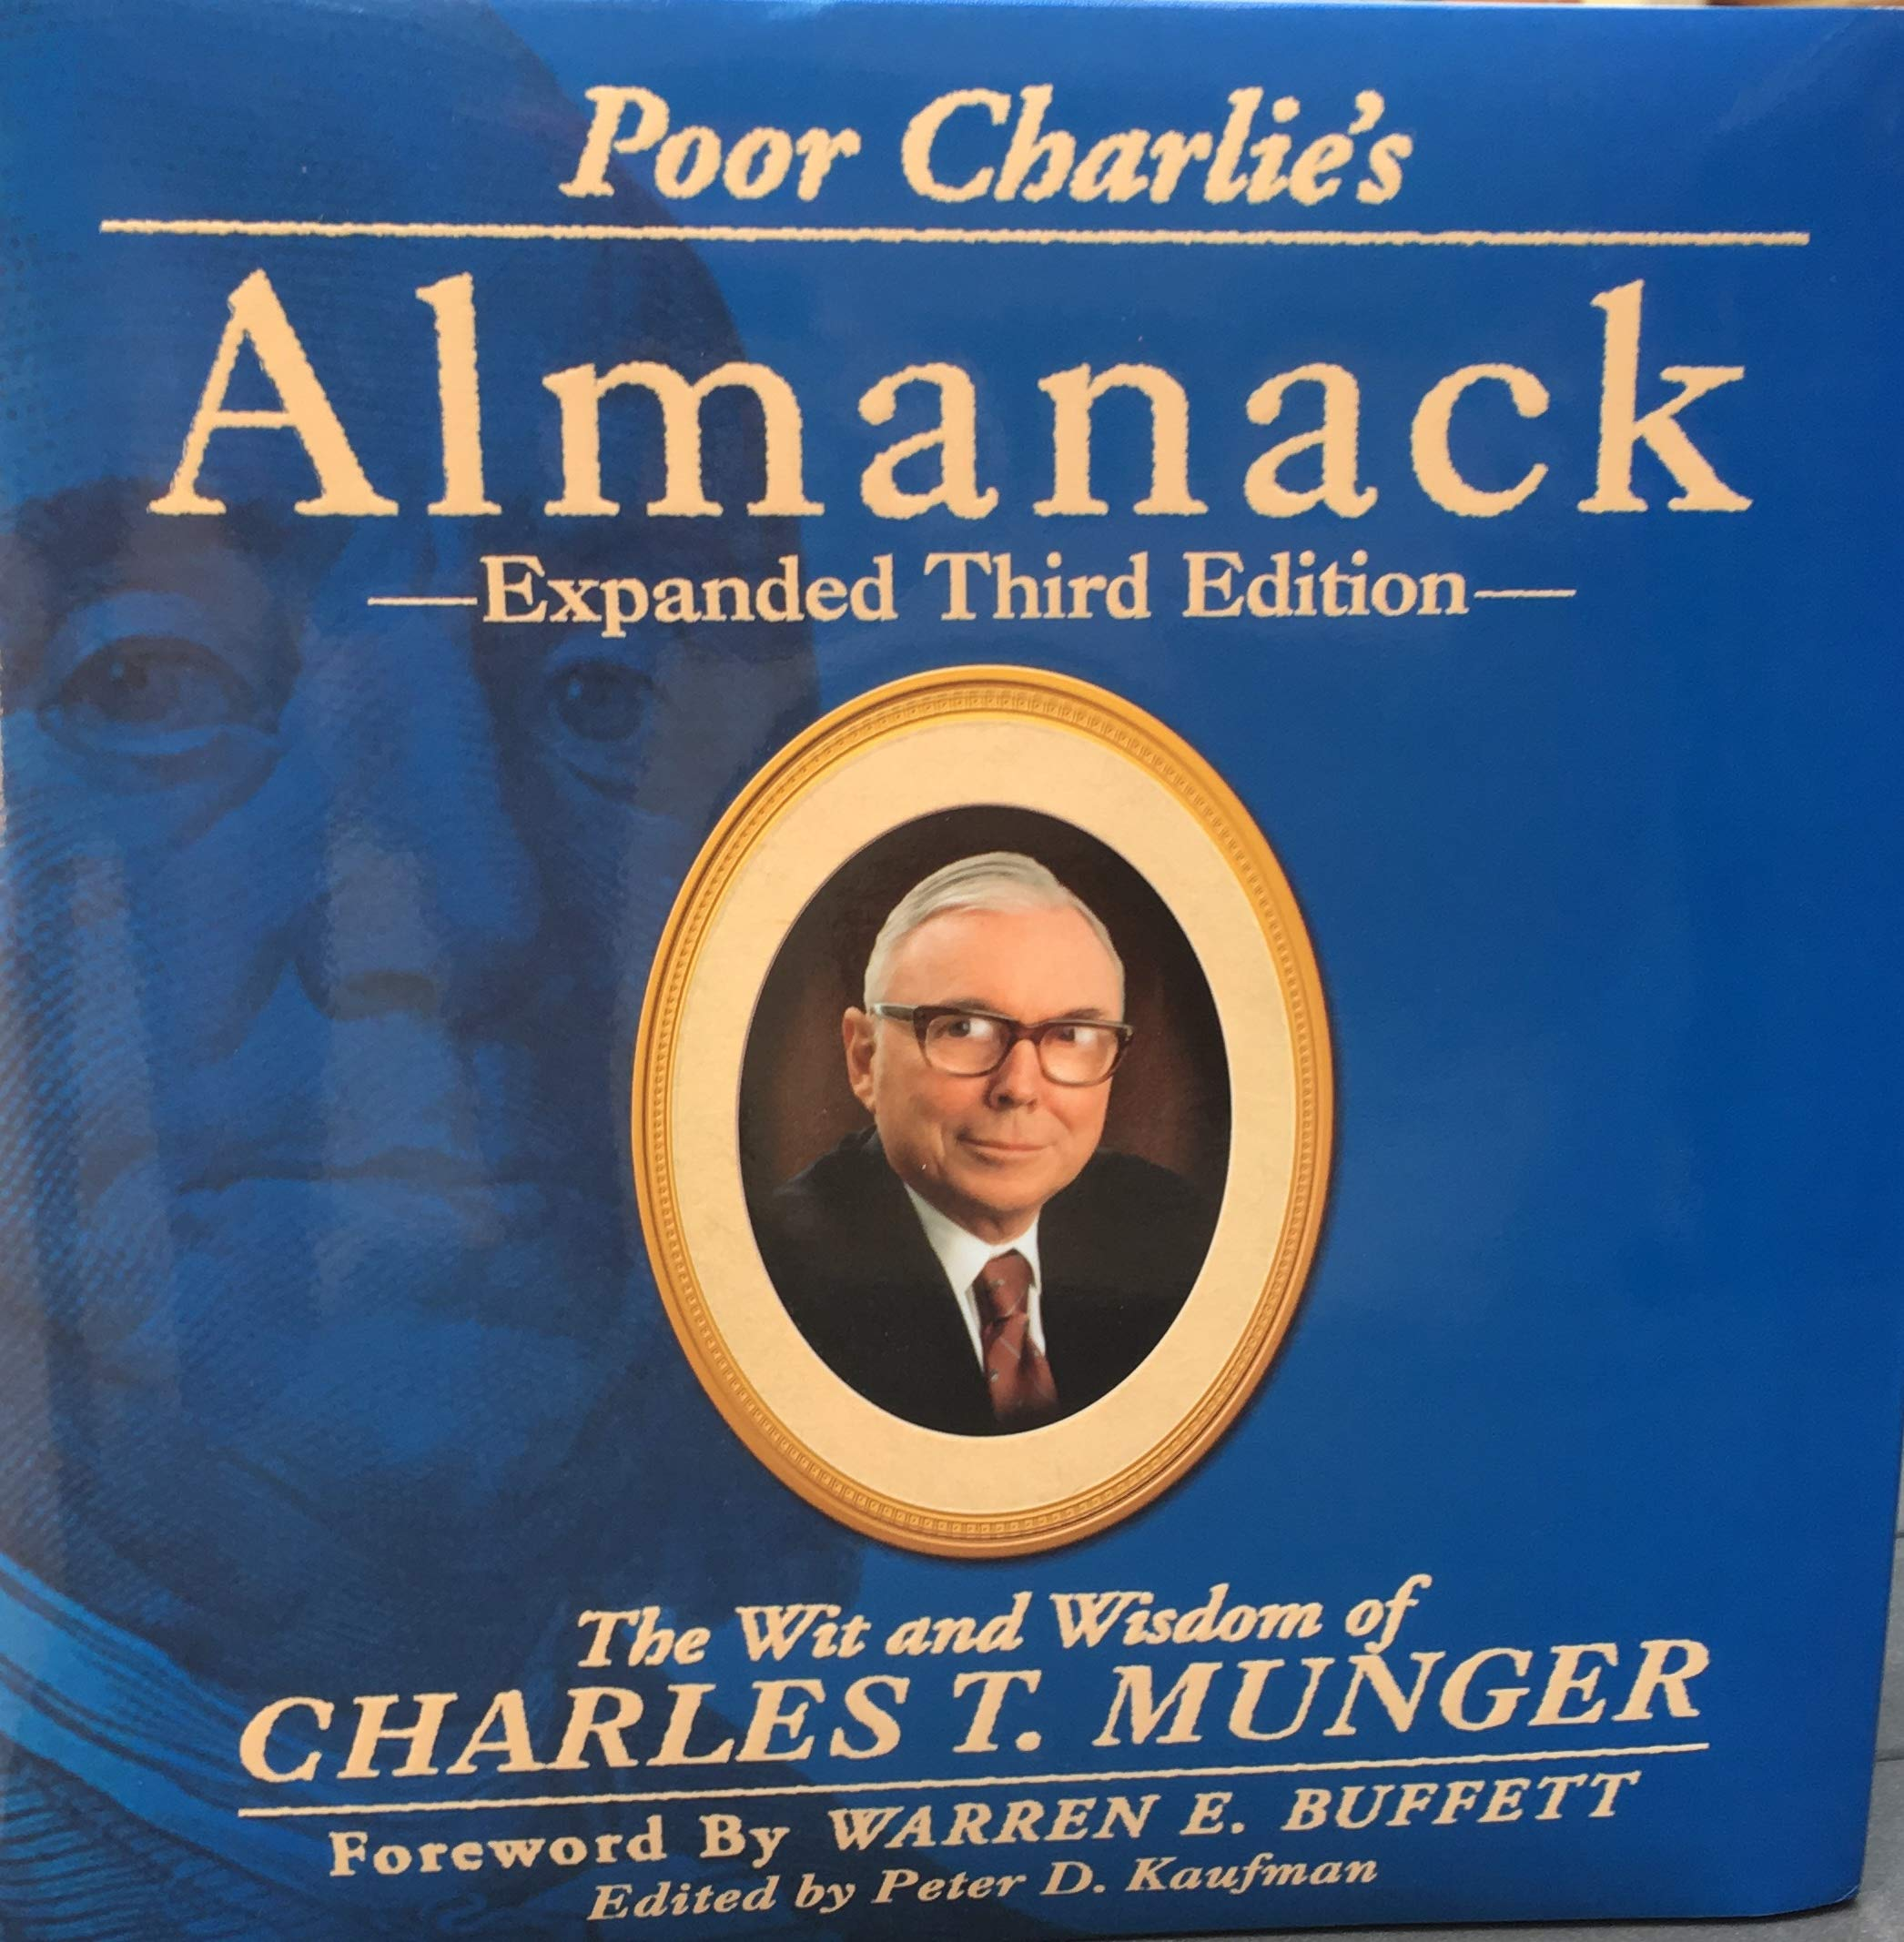 Poor Charlie's Almanack: The Wit and Wisdom of Charles T. Munger, Expanded Third Edition by Walsworth Publishing Company